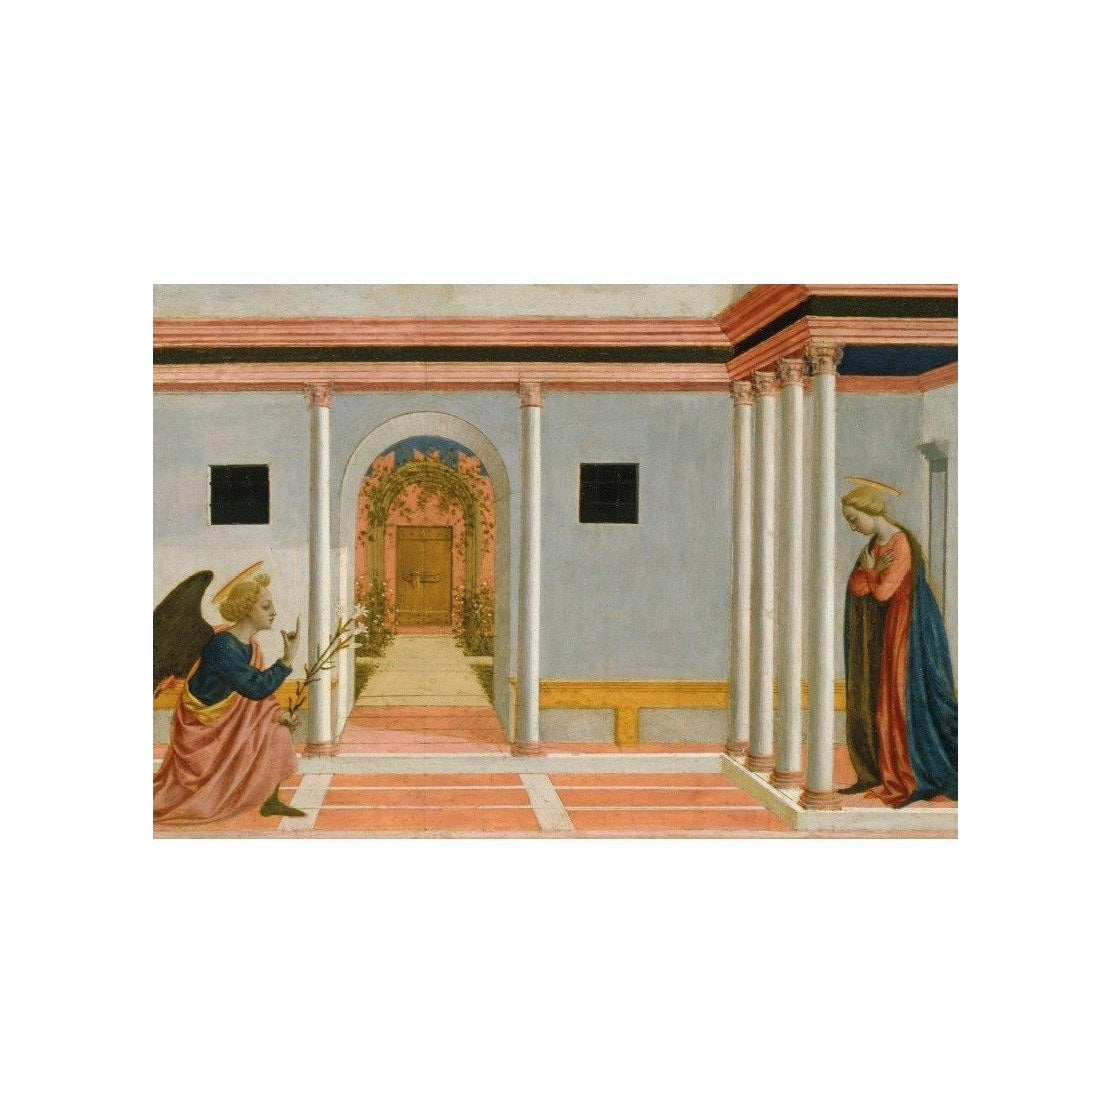 Featured image for the project: The Annunciation - Christmas card pack